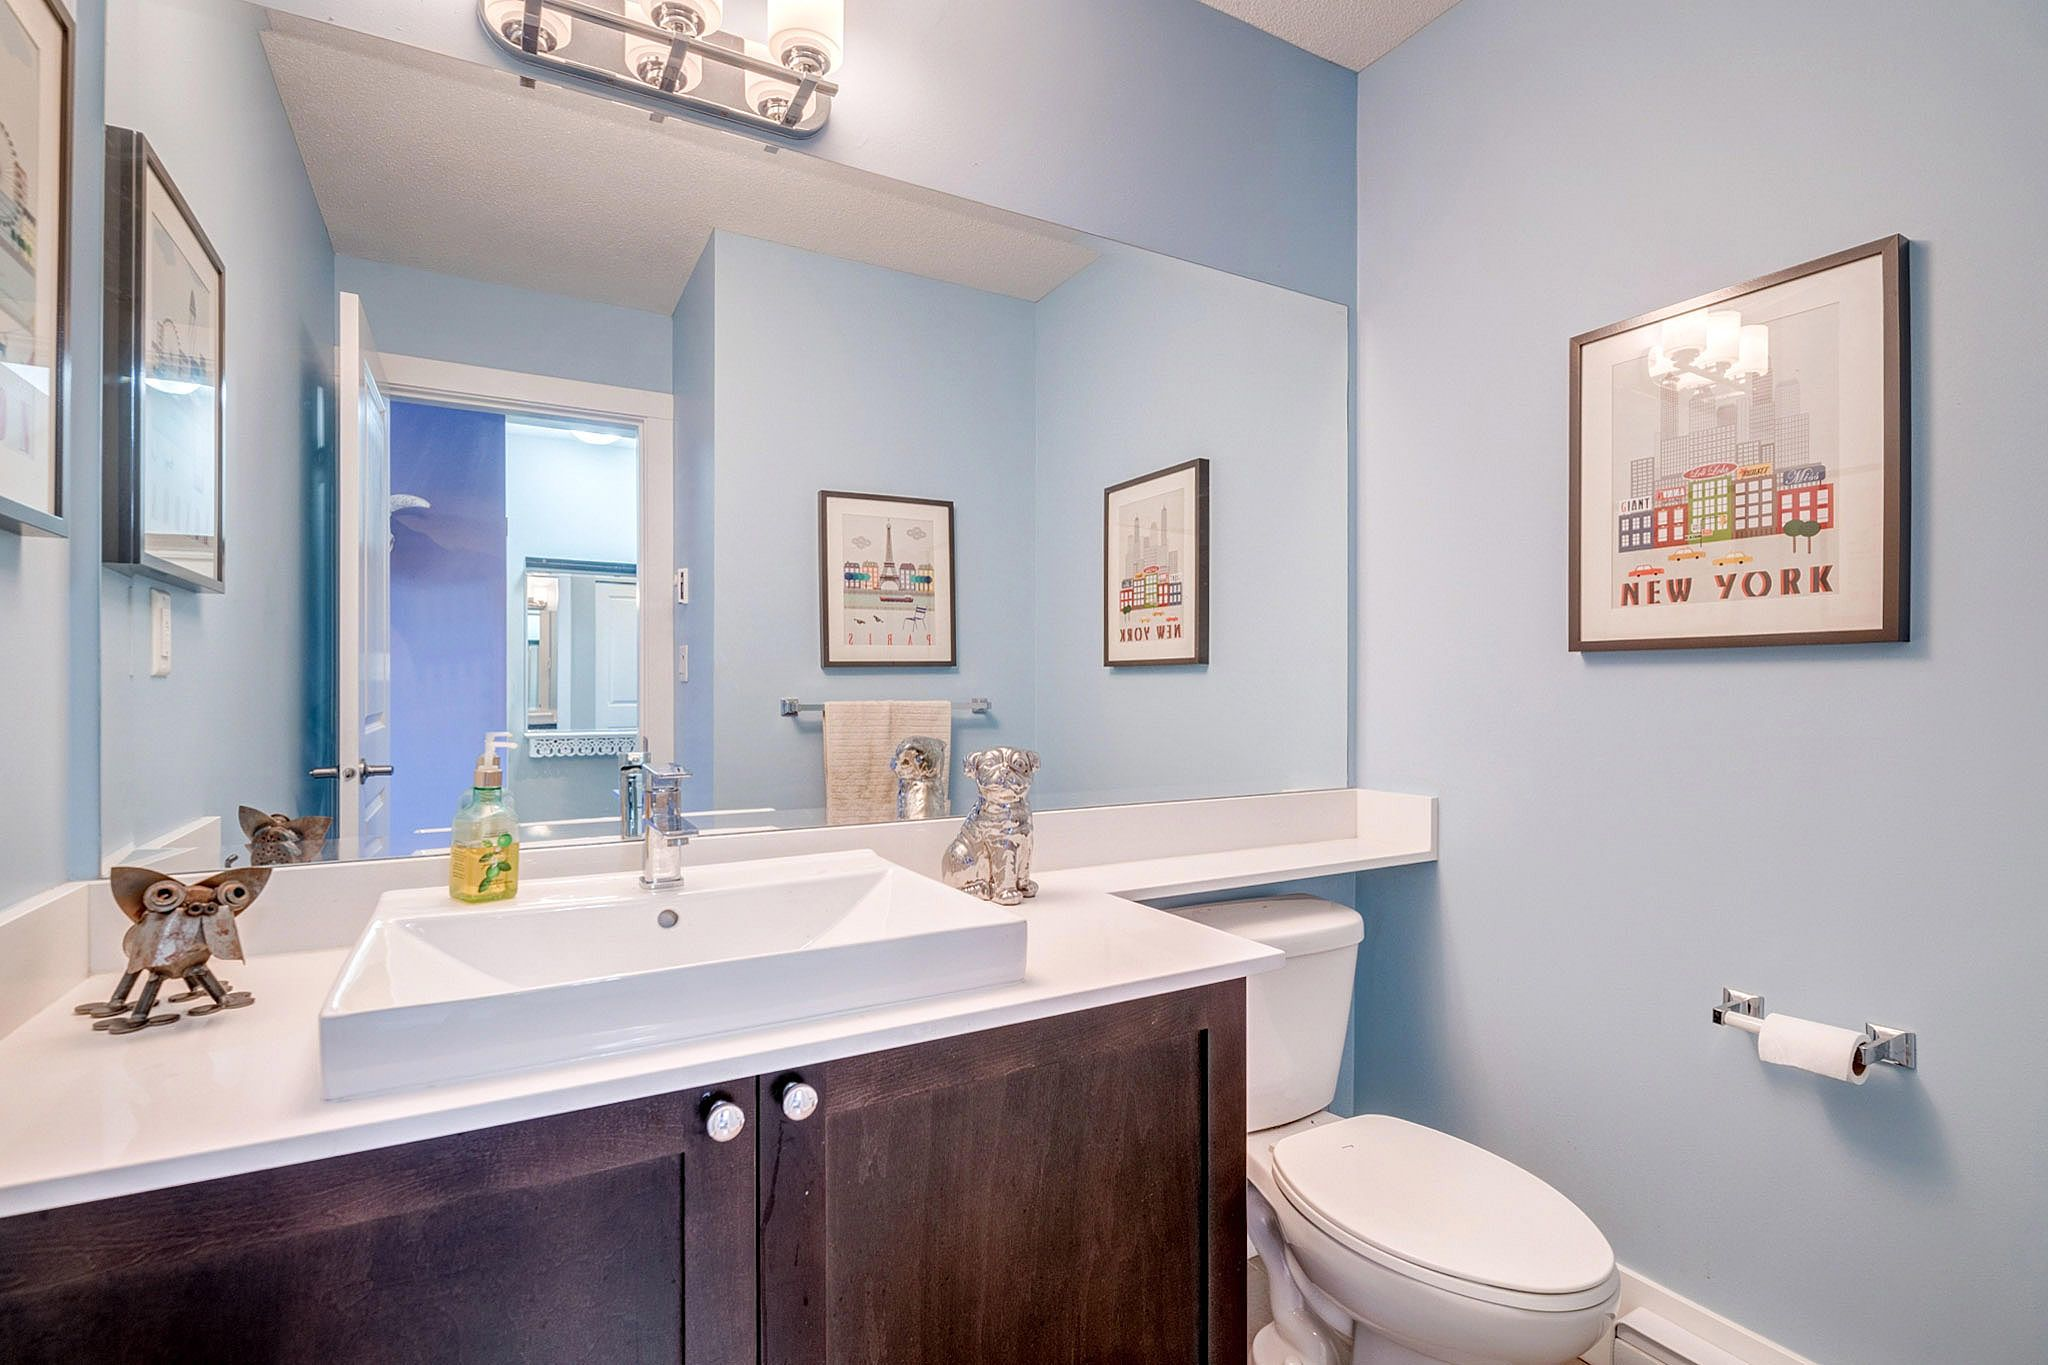 Photo 10: Photos: 10 19742 55A Street in Langley: Langley City Townhouse for sale : MLS®# R2388093